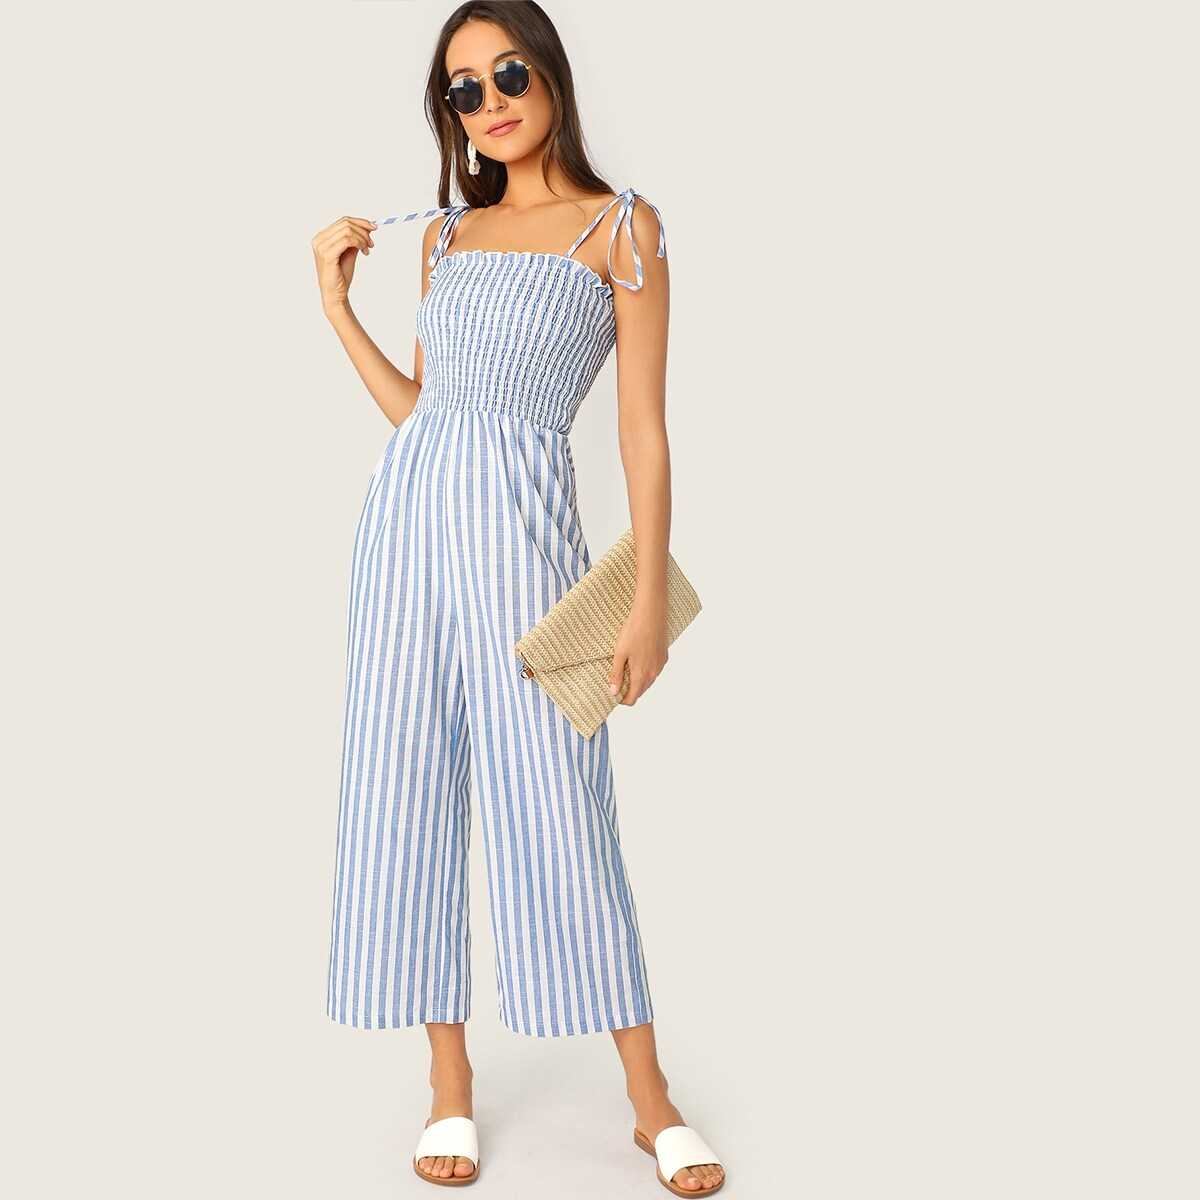 Two Tone Knot Shoulder Frill Smocked Striped Jumpsuit - Shein - GOOFASH